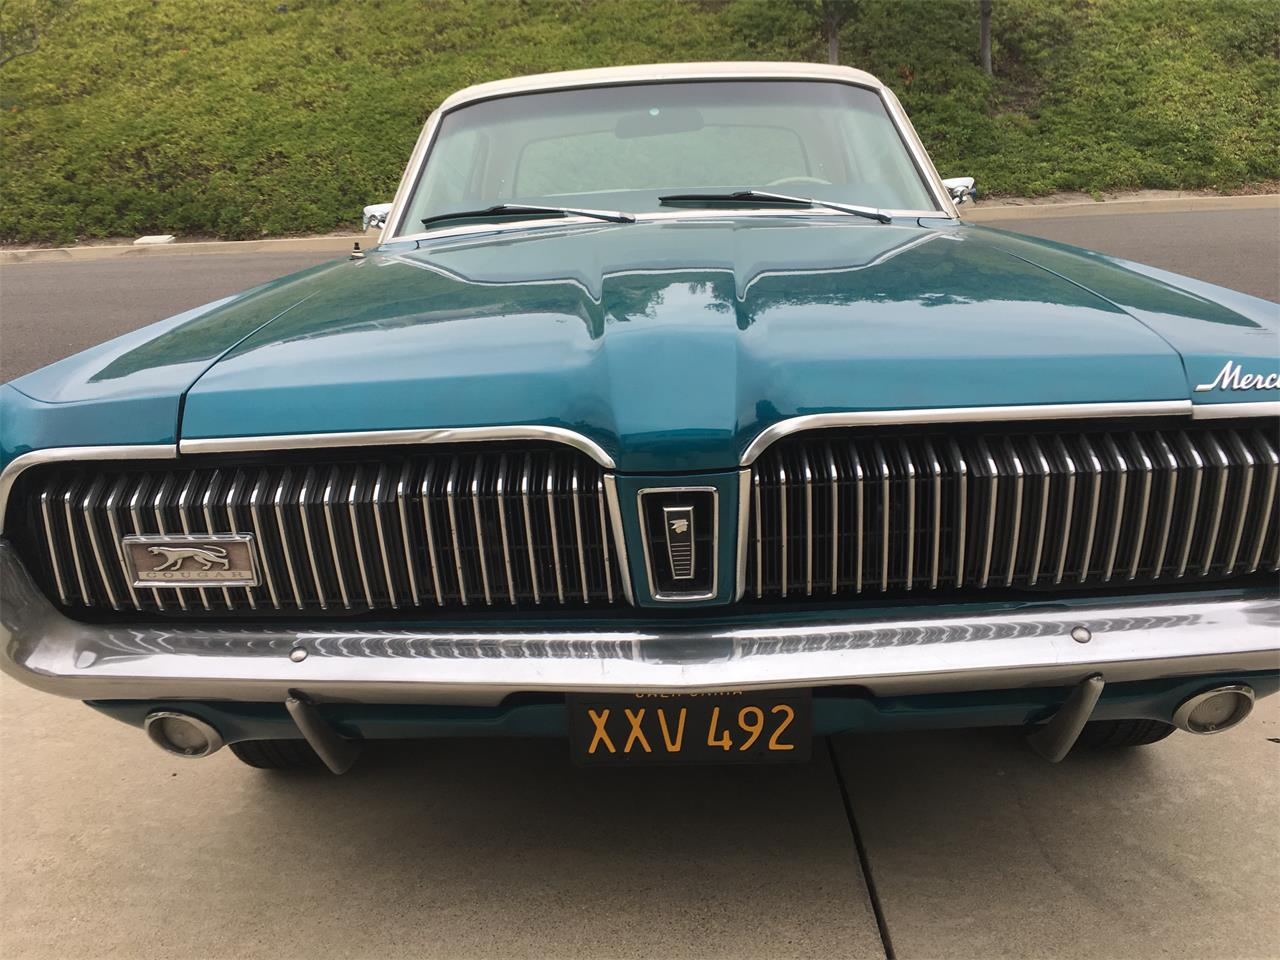 Large Picture of Classic '68 Mercury Cougar  located in Mission Viejo California - $20,000.00 - L6MB